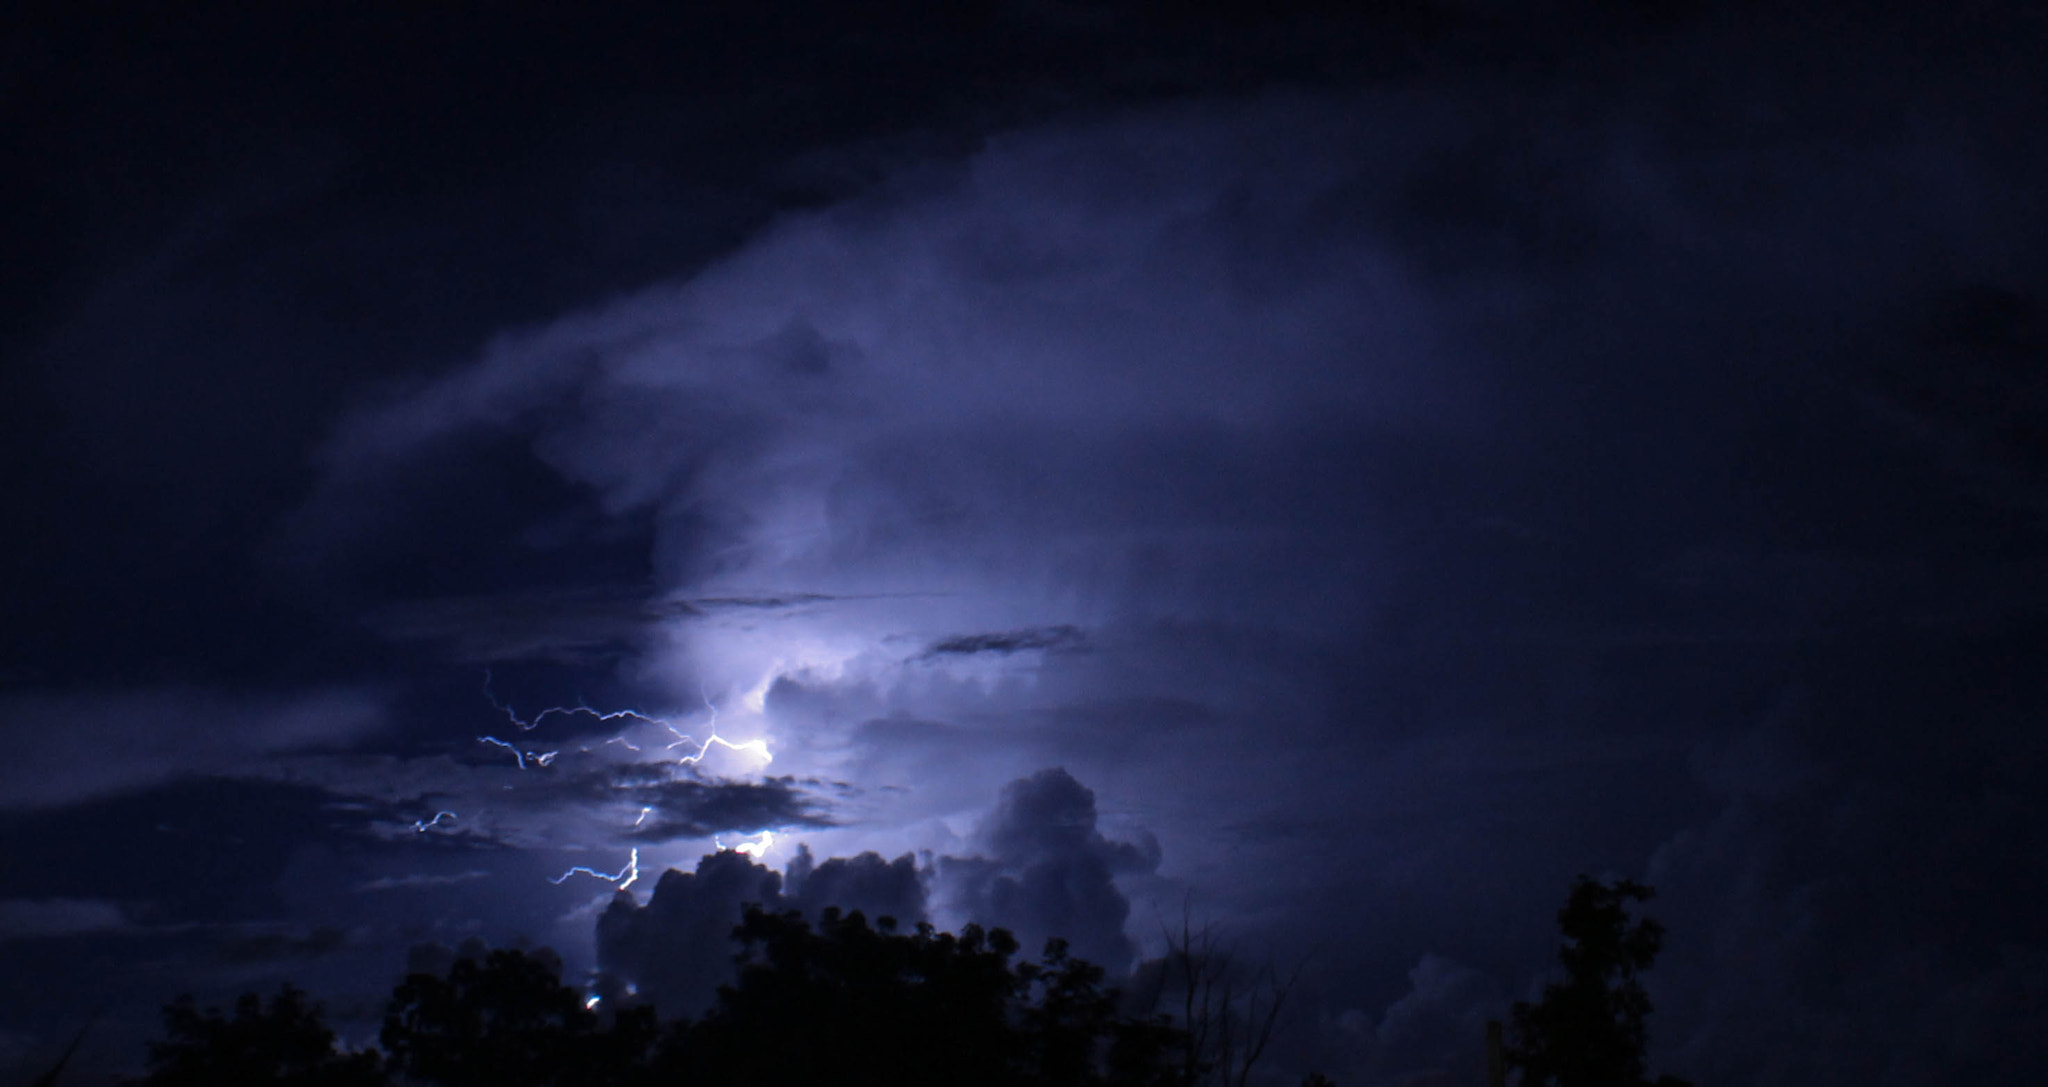 Photograph lightning. by Adriana Vazquez on 500px